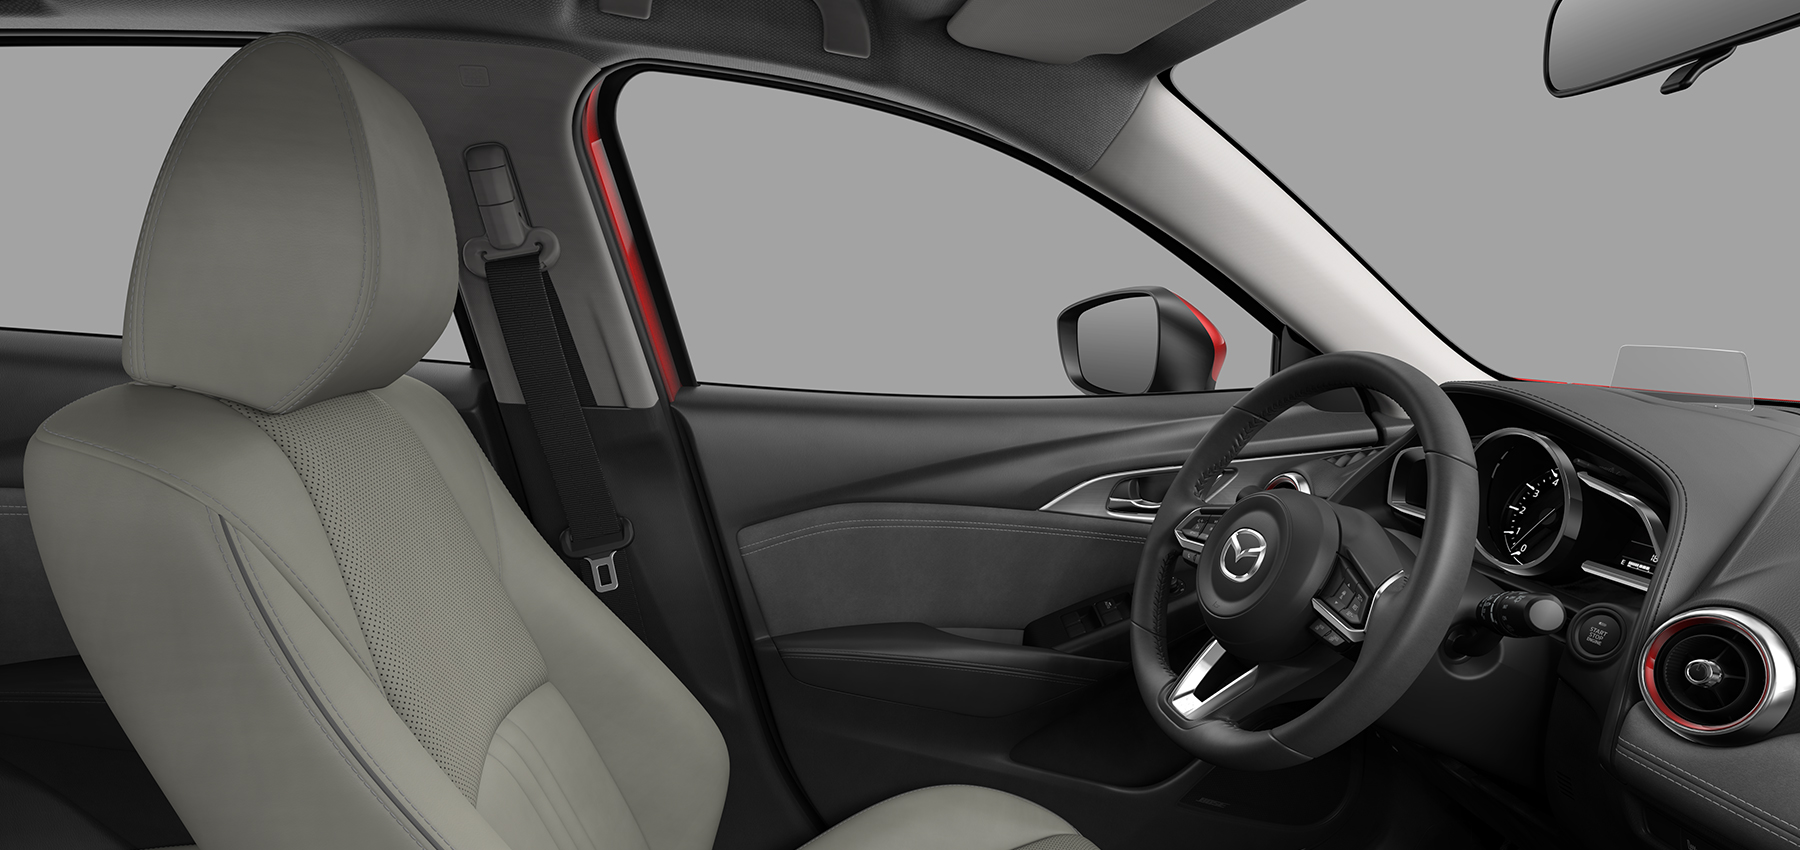 Mazda 3 Owners Manual: Outside Mirrors